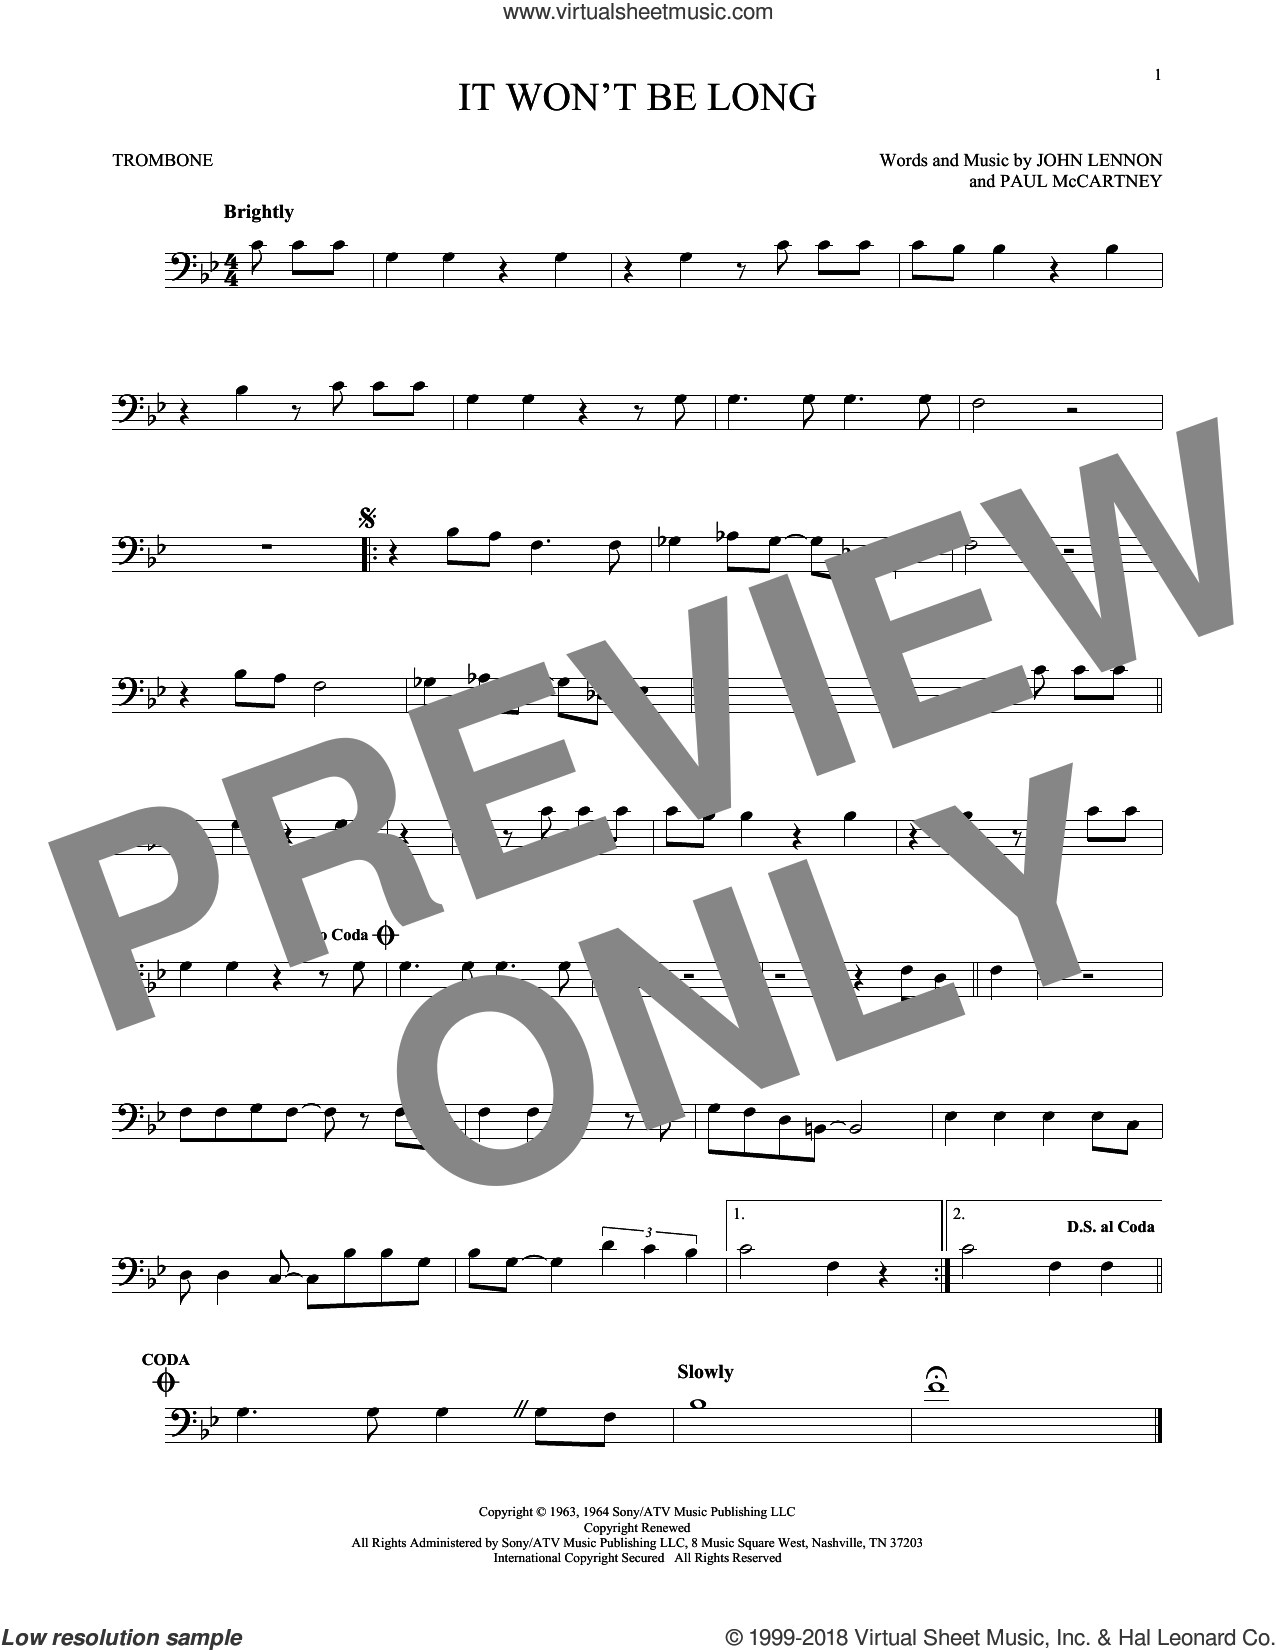 It Won't Be Long sheet music for trombone solo by Paul McCartney, The Beatles and John Lennon. Score Image Preview.